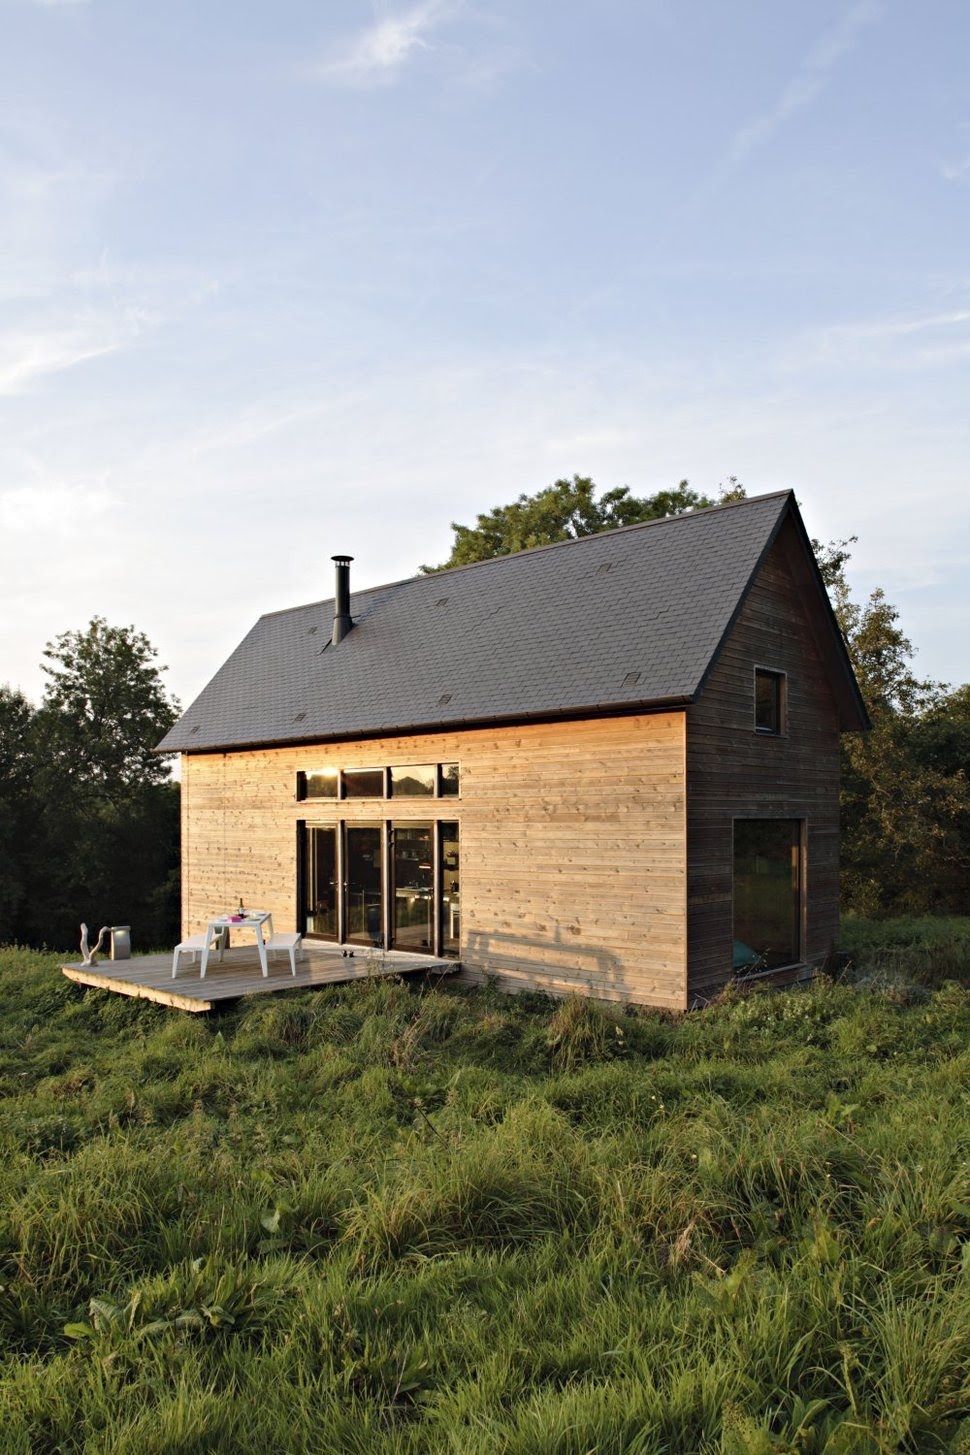 Barn Style Weekend Cabin Embraces the Simple Life | Modern ...